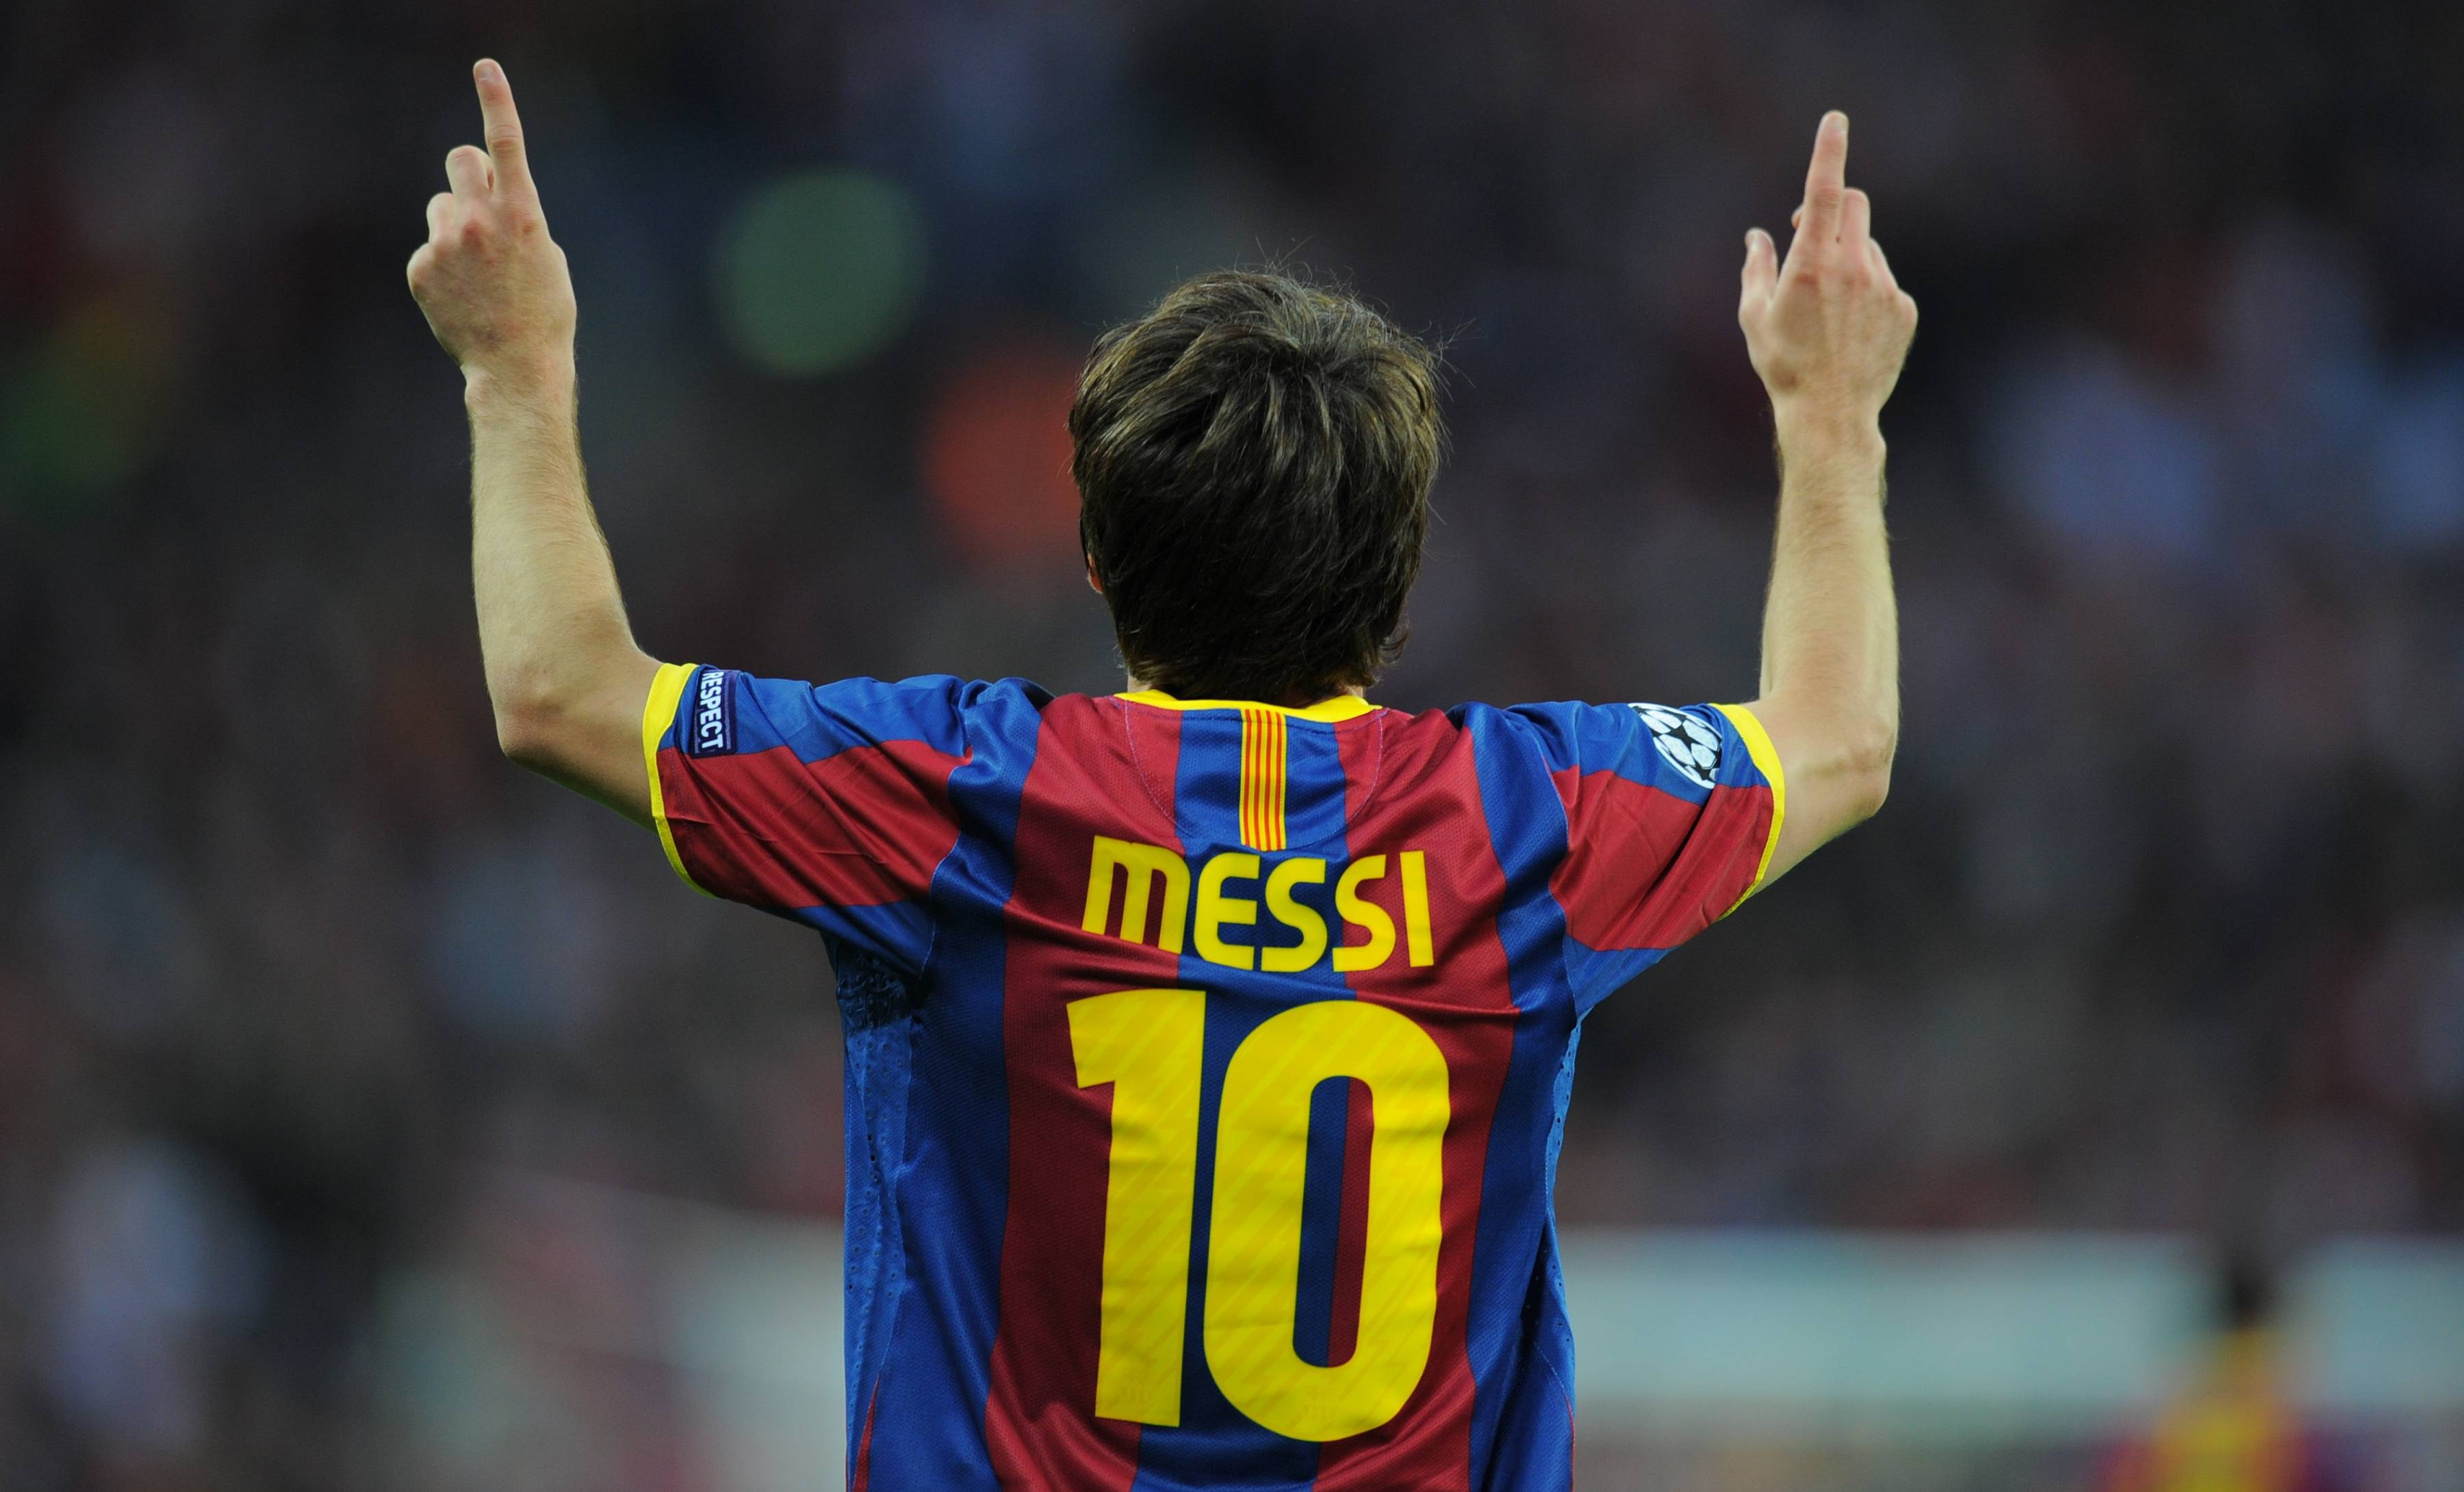 Wallpapers Of Messi Wallpaper Cave